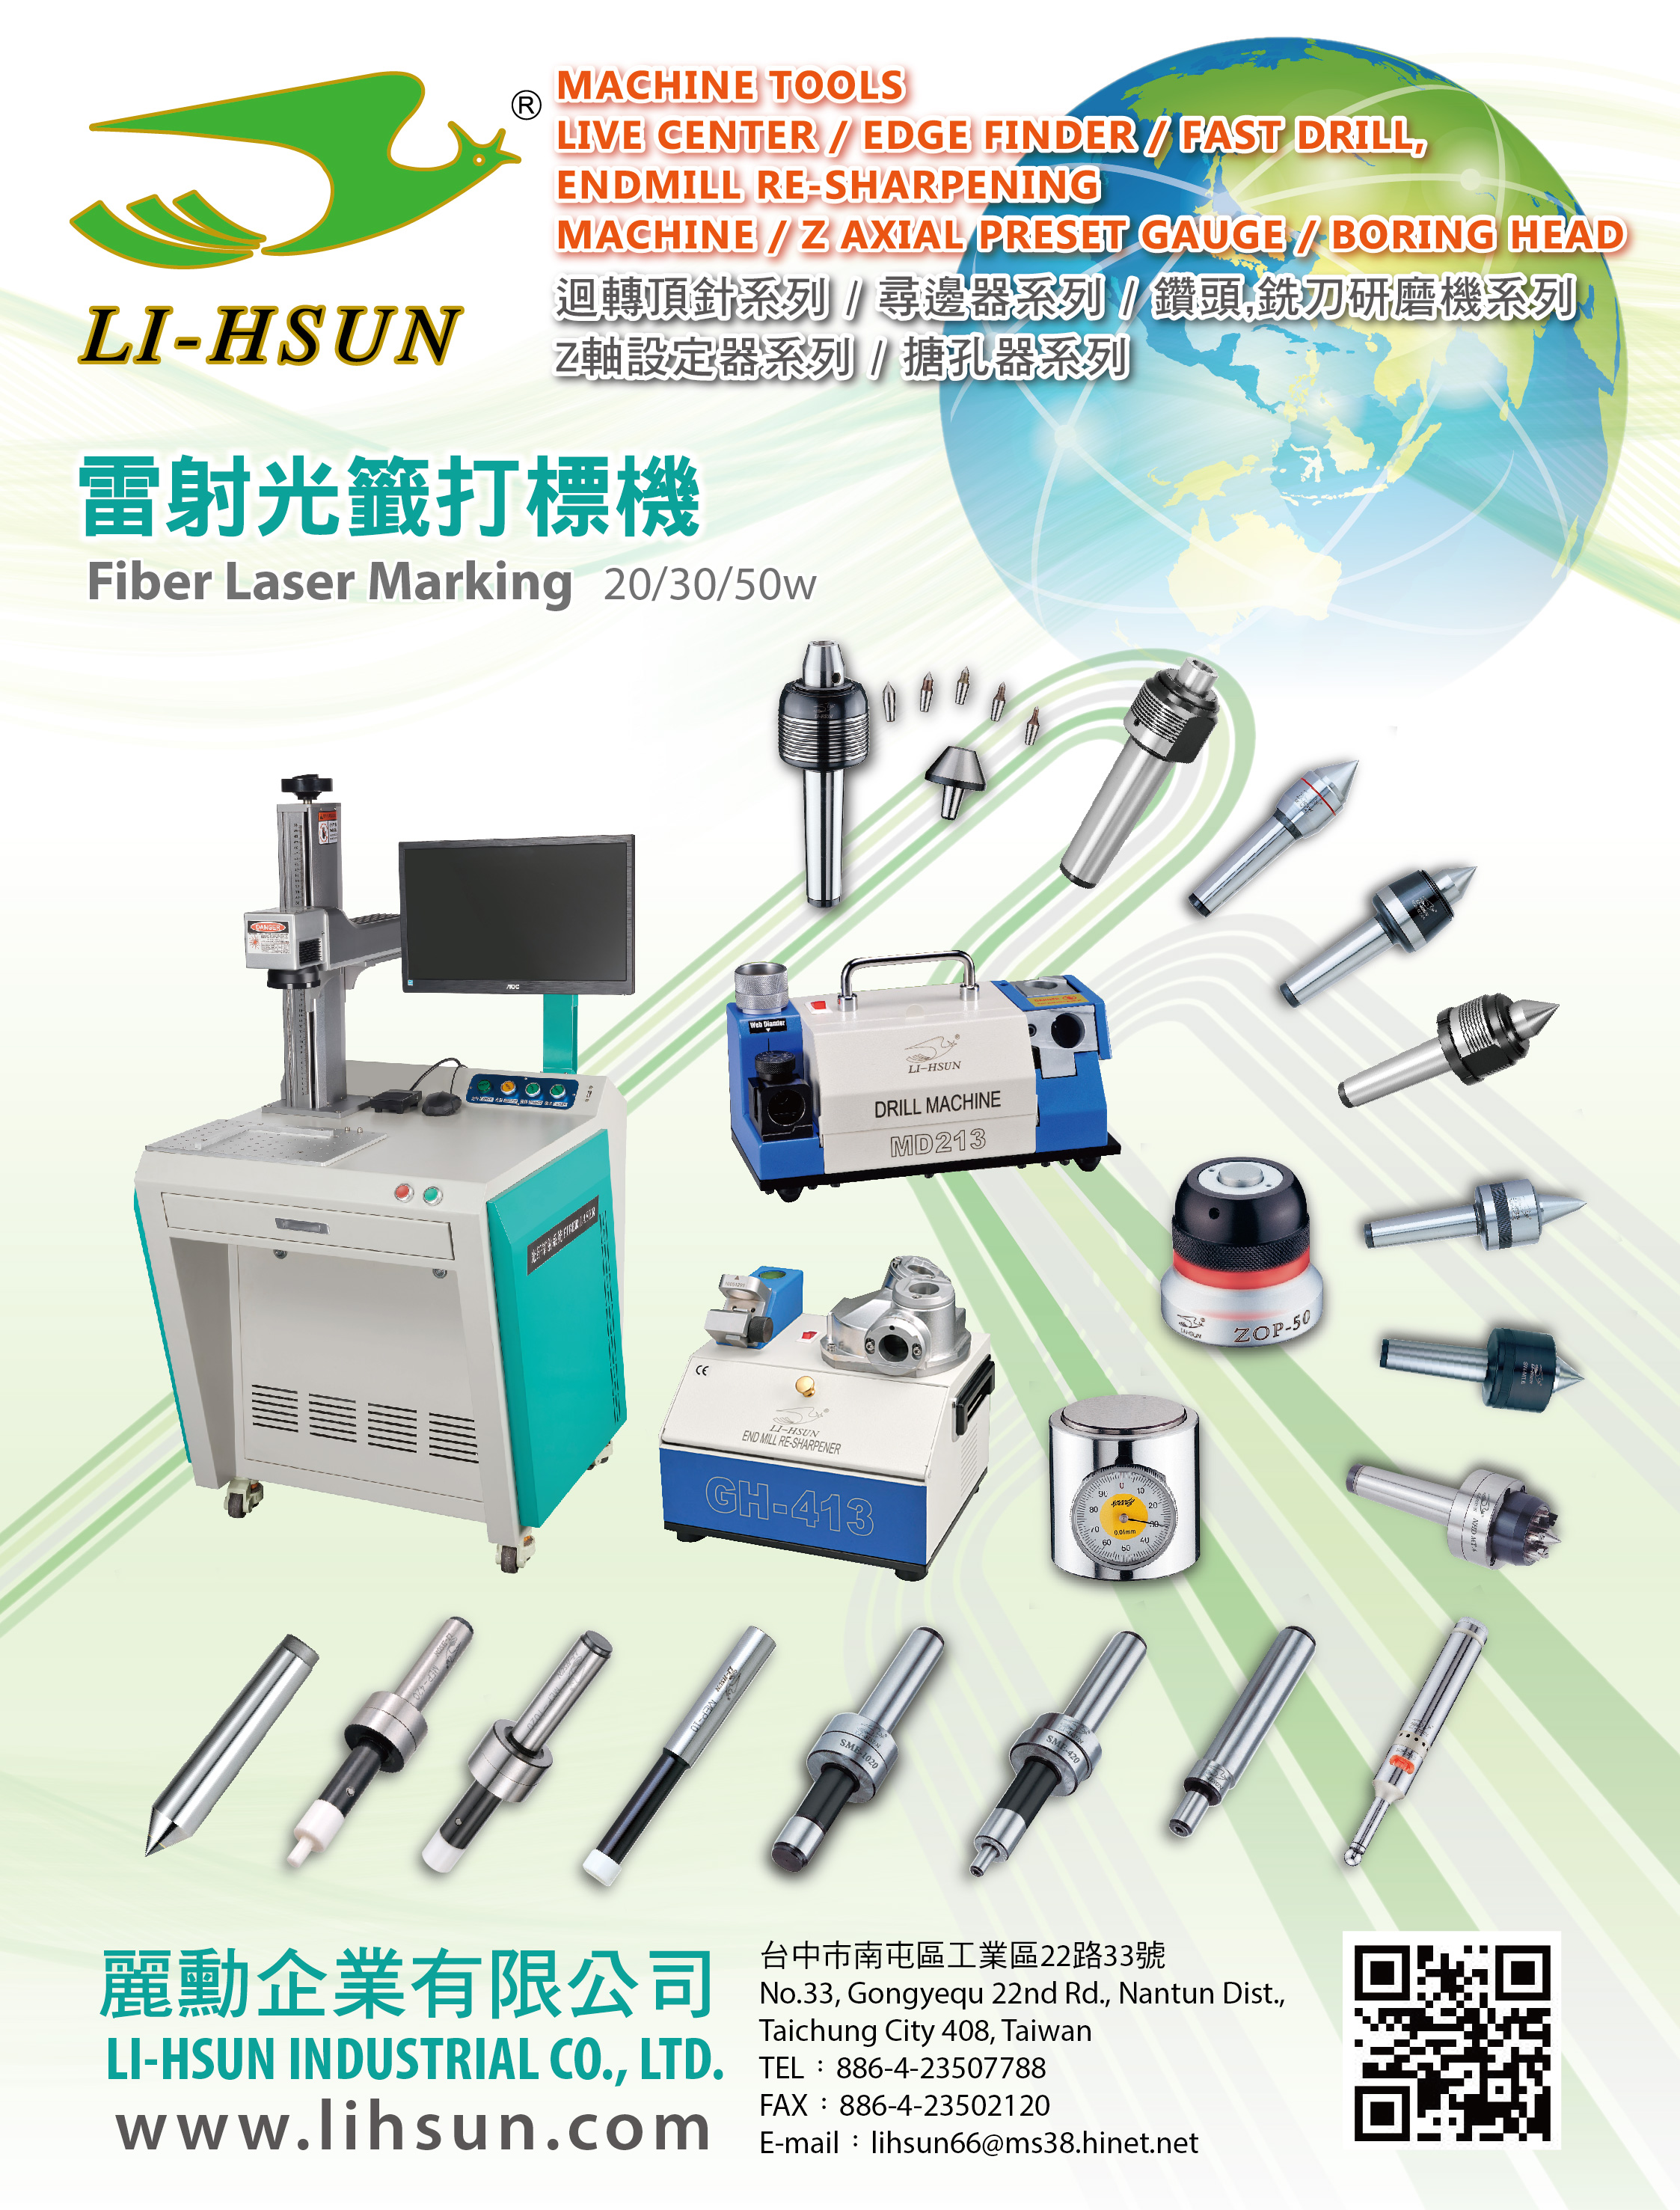 LI-HSUN INDUSTRIAL CO., LTD.